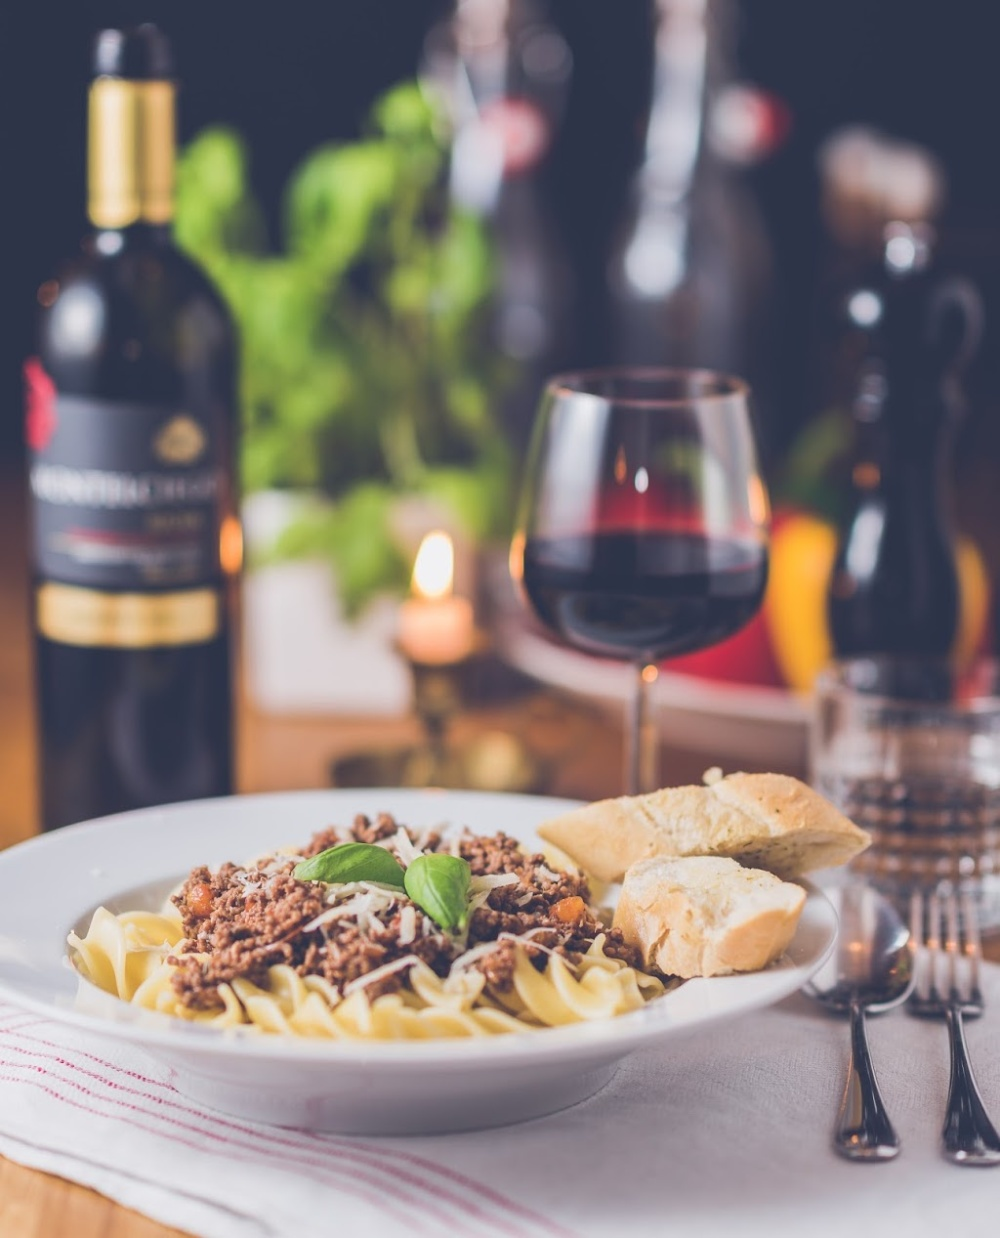 How to choose a wine to go with your meal